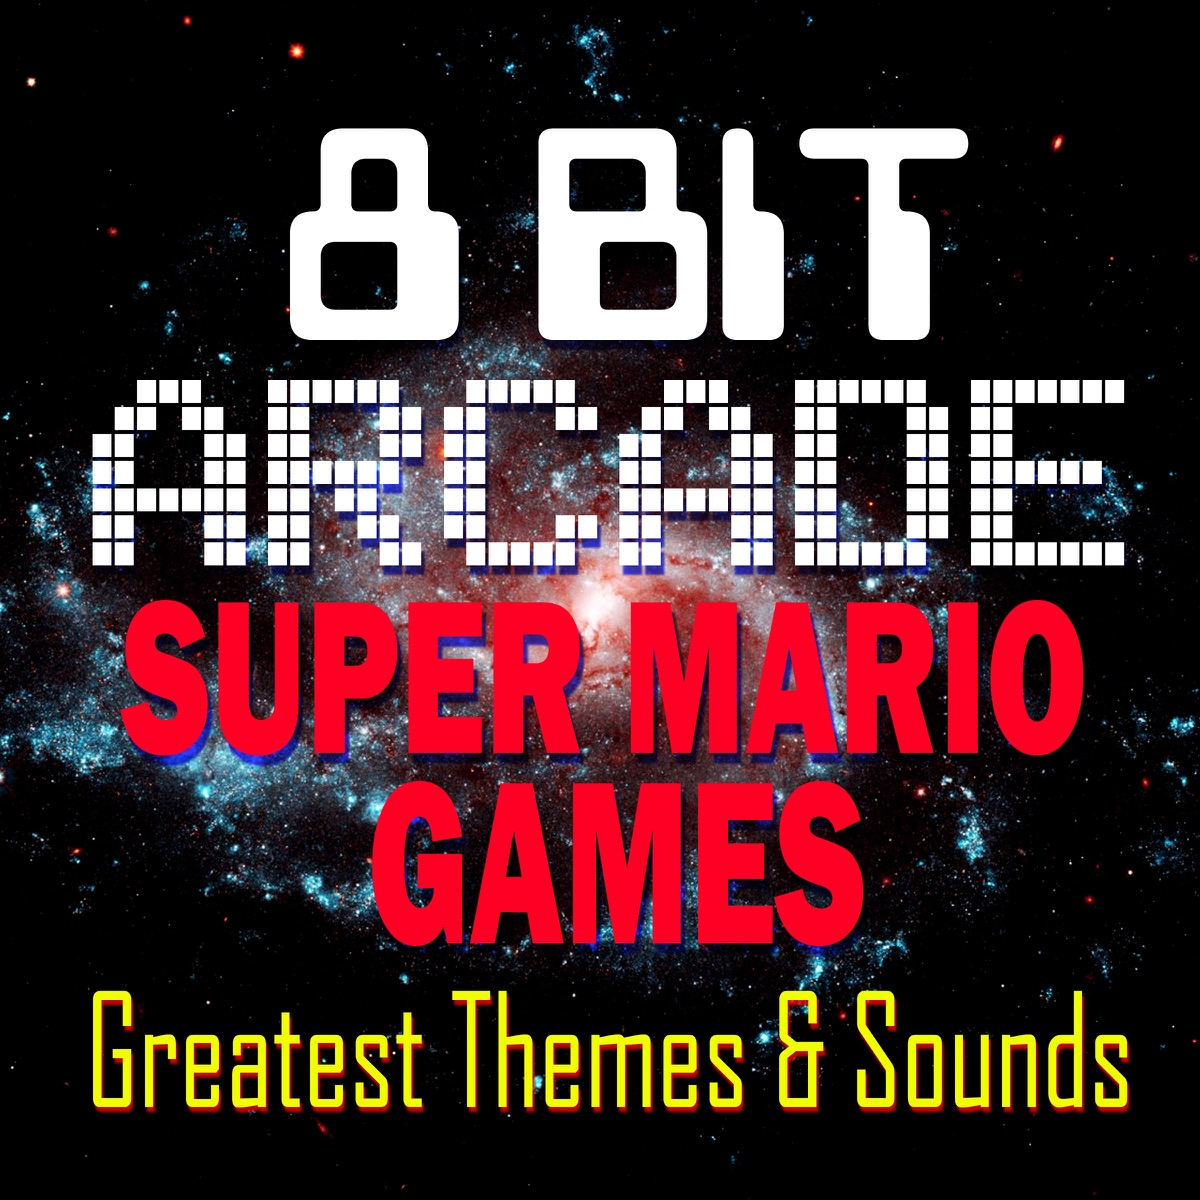 Super Mario Games - Greatest Themes  Sounds 8-Bit Arcade CD cover